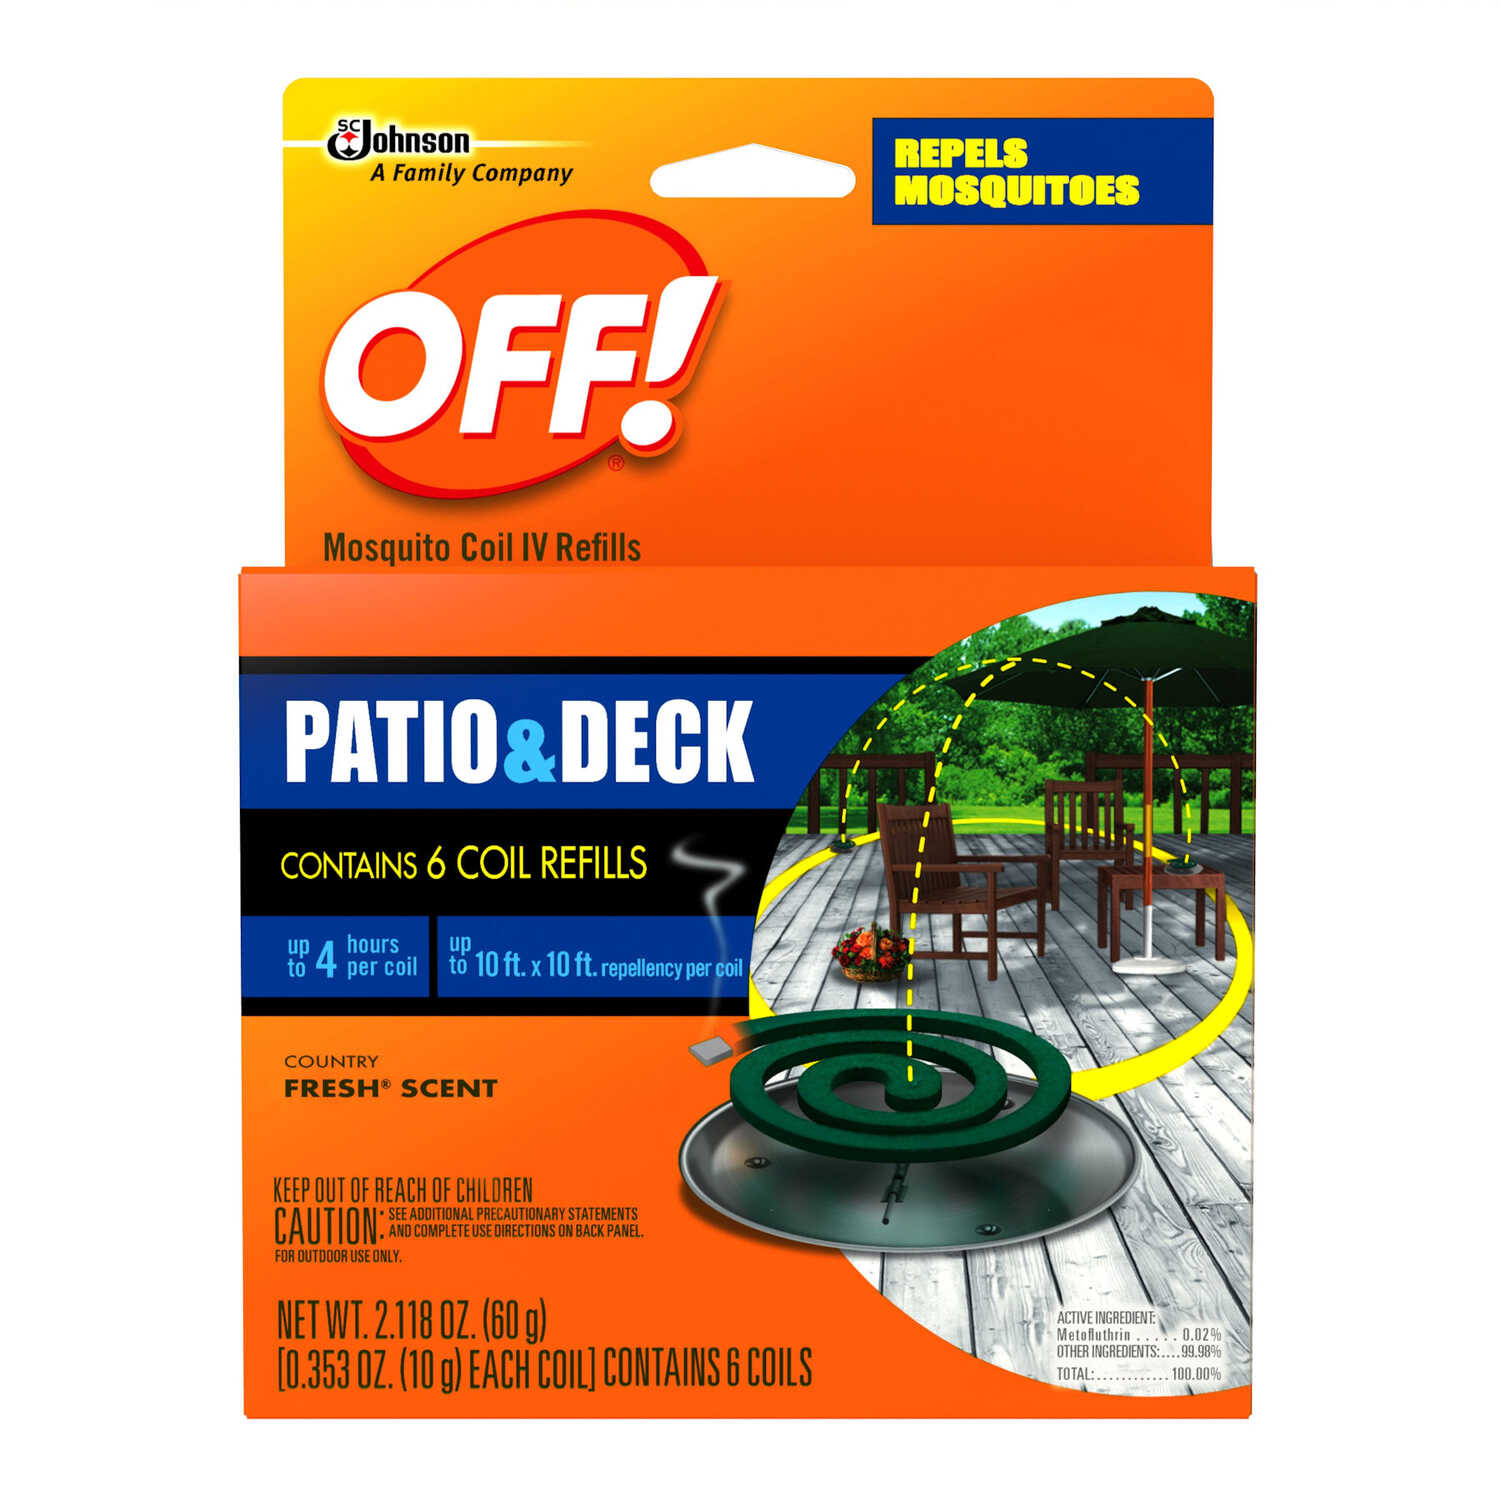 OFF! Insect Repellent Refill Coil For Mosquitoes 5 oz  - Ace